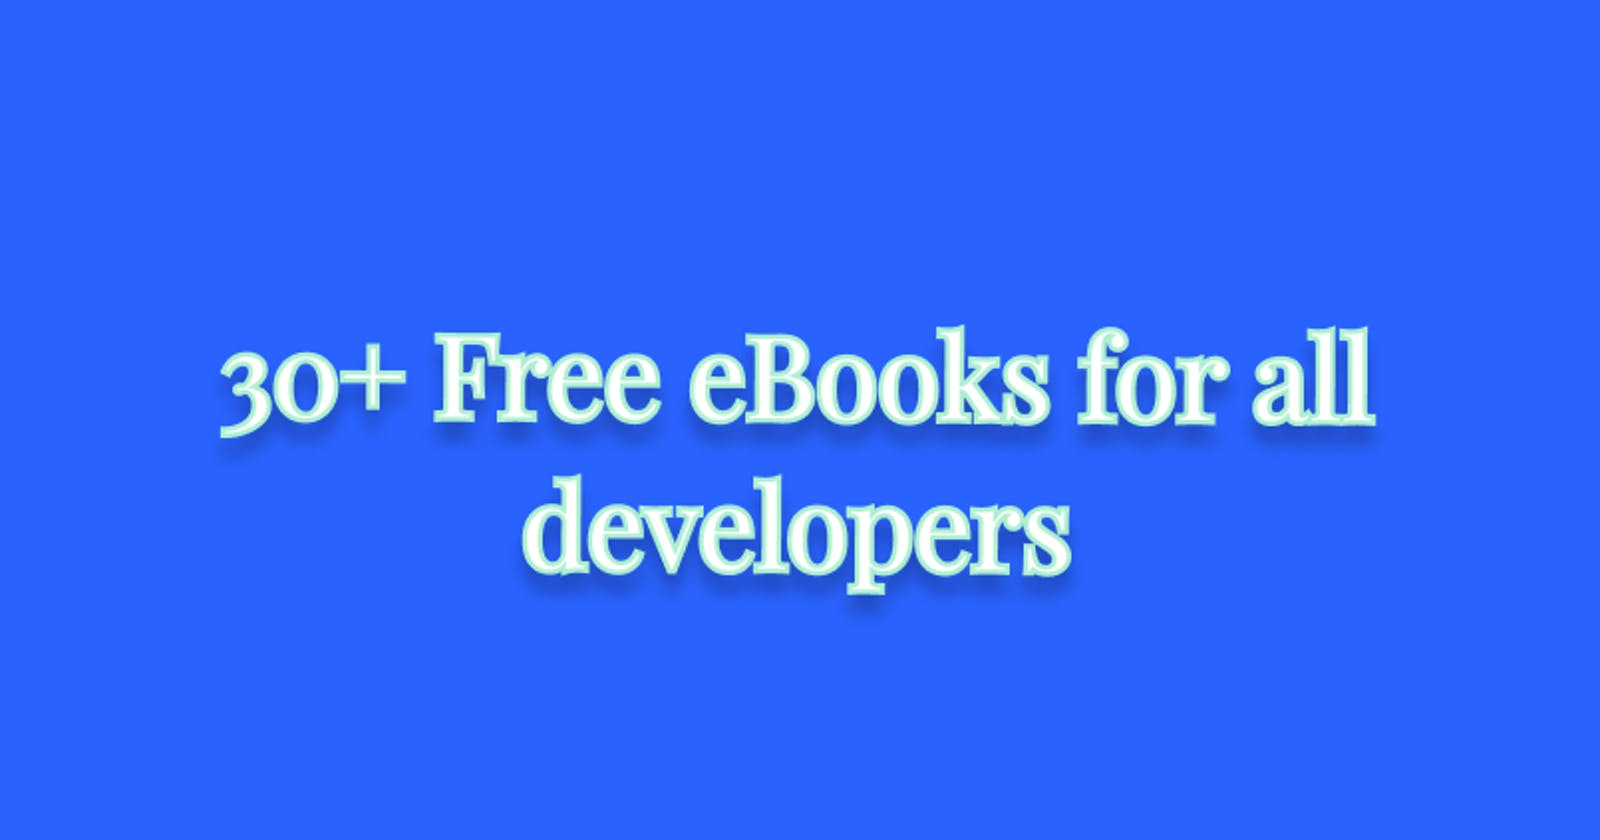 30+ Free eBooks for all developers